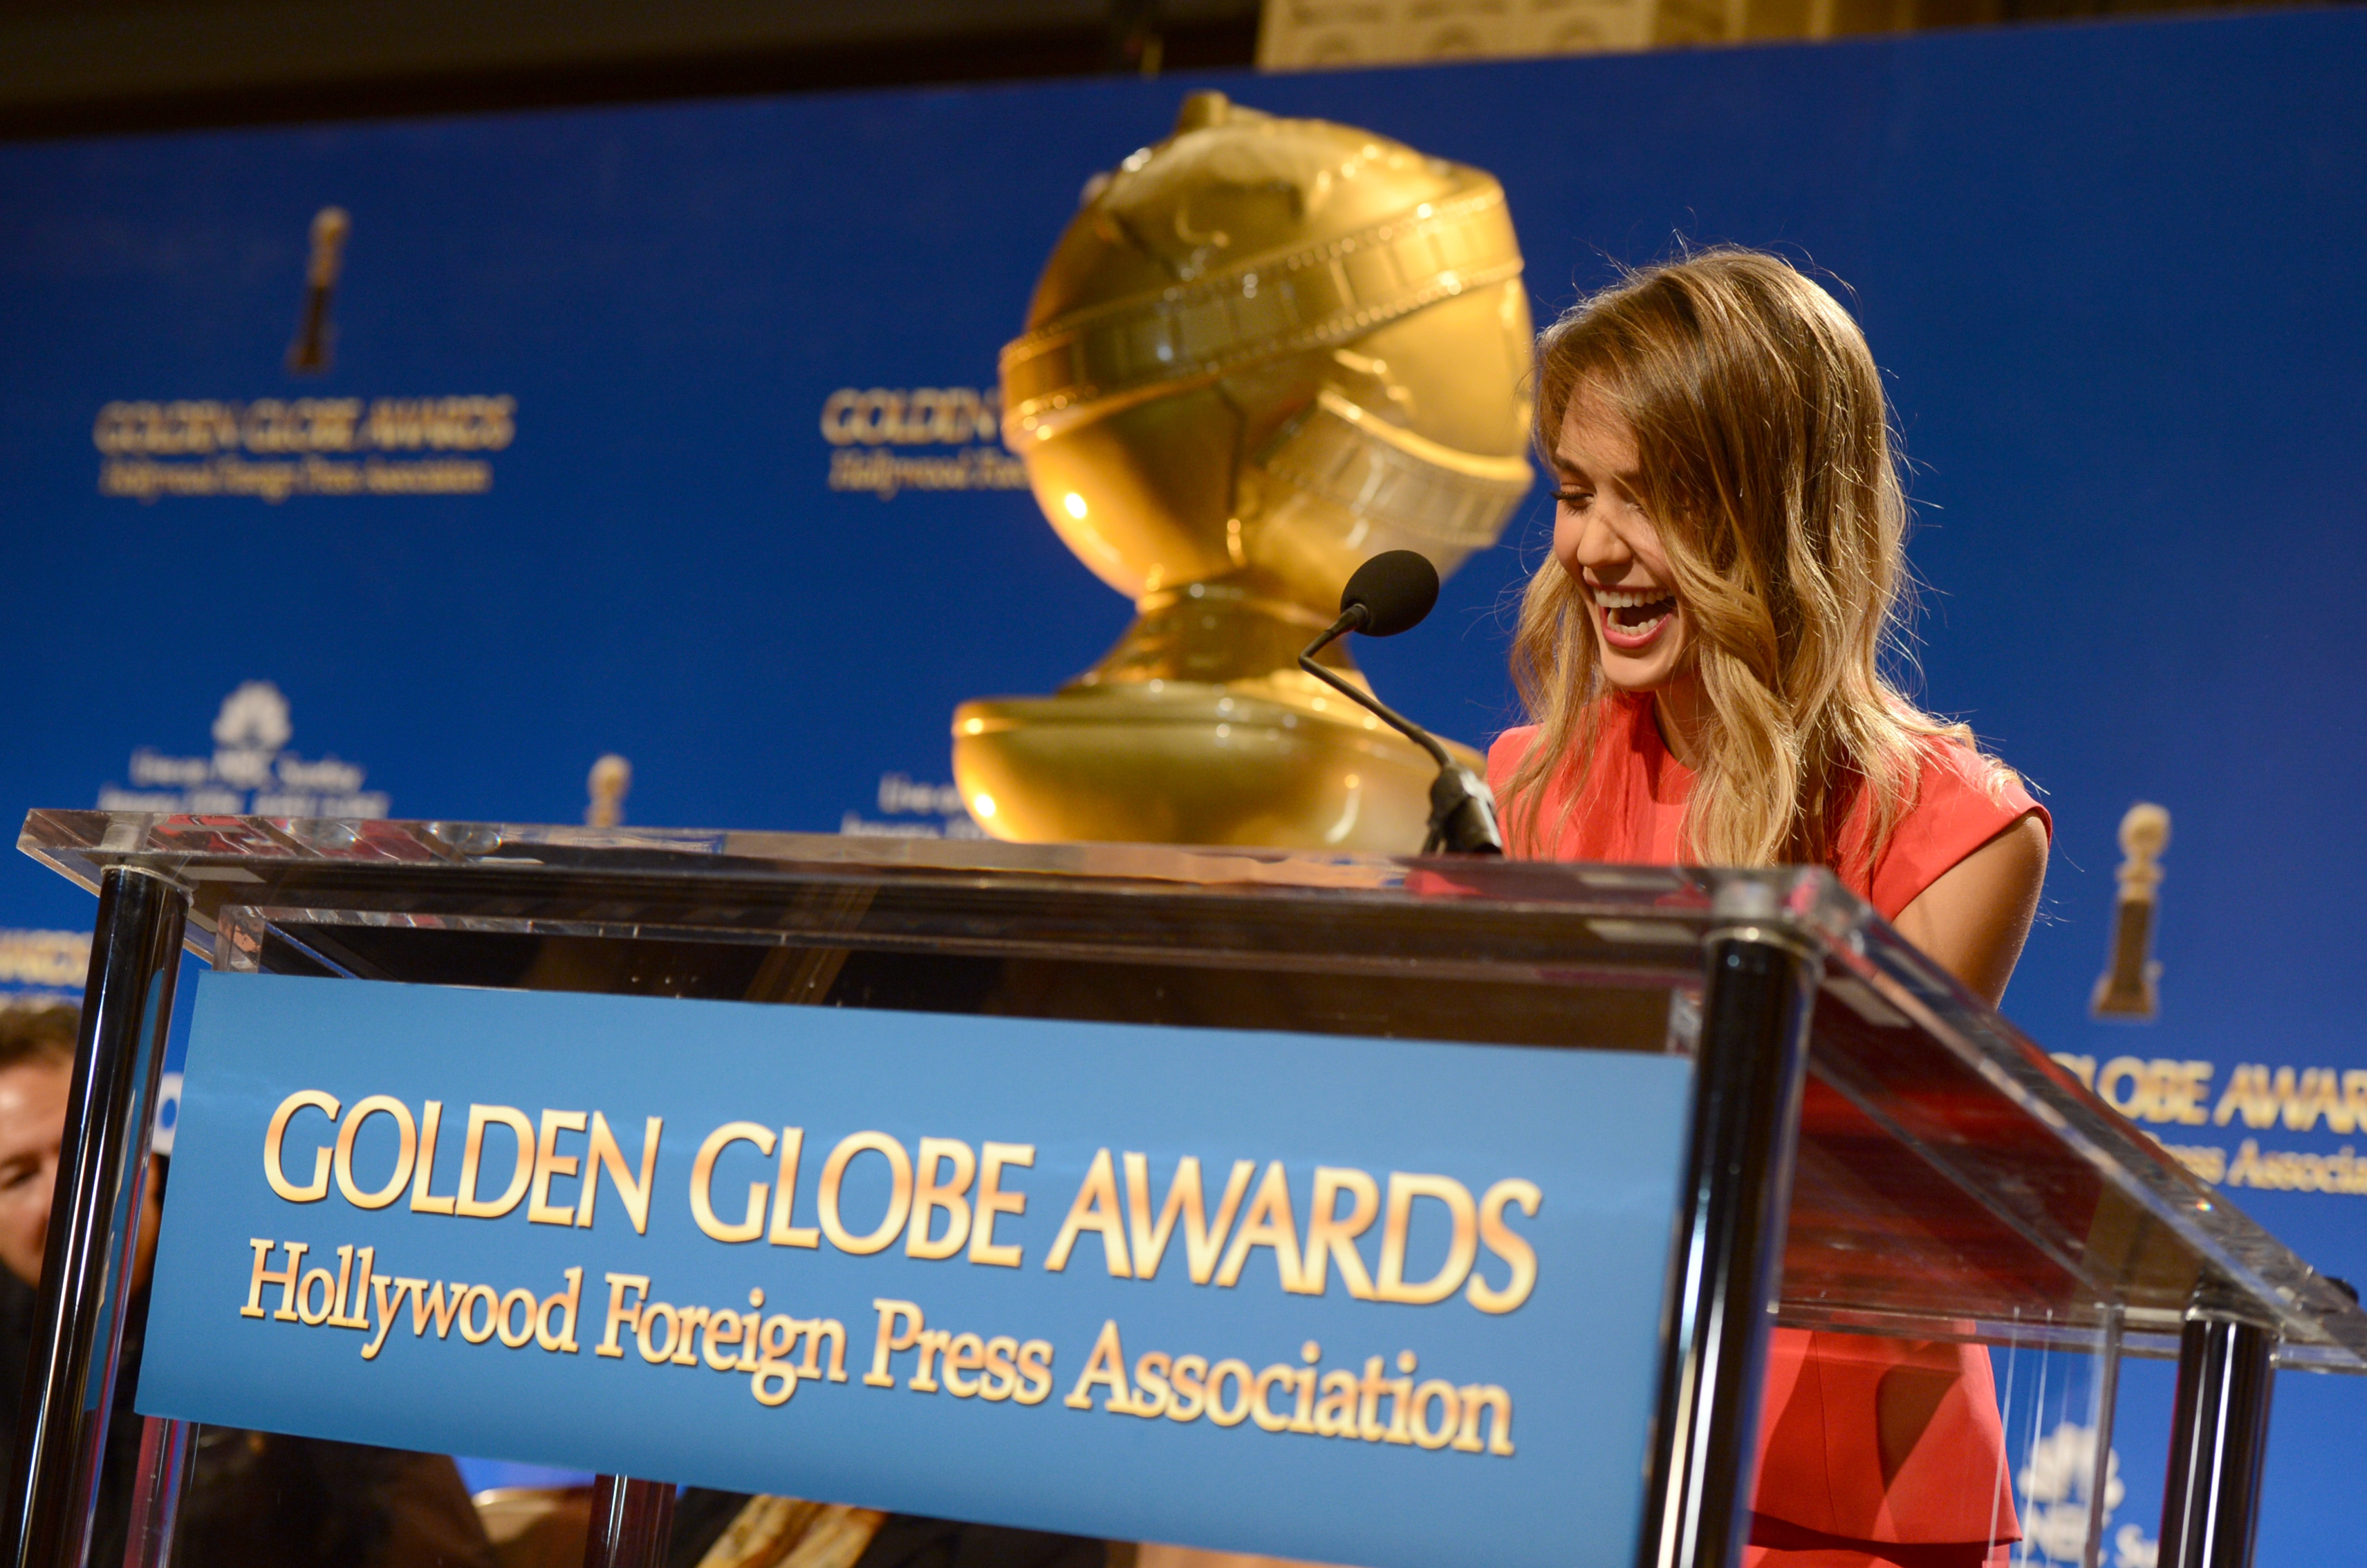 Jessica Alba was on stage at the Golden Globe Awards Nominations in LA.